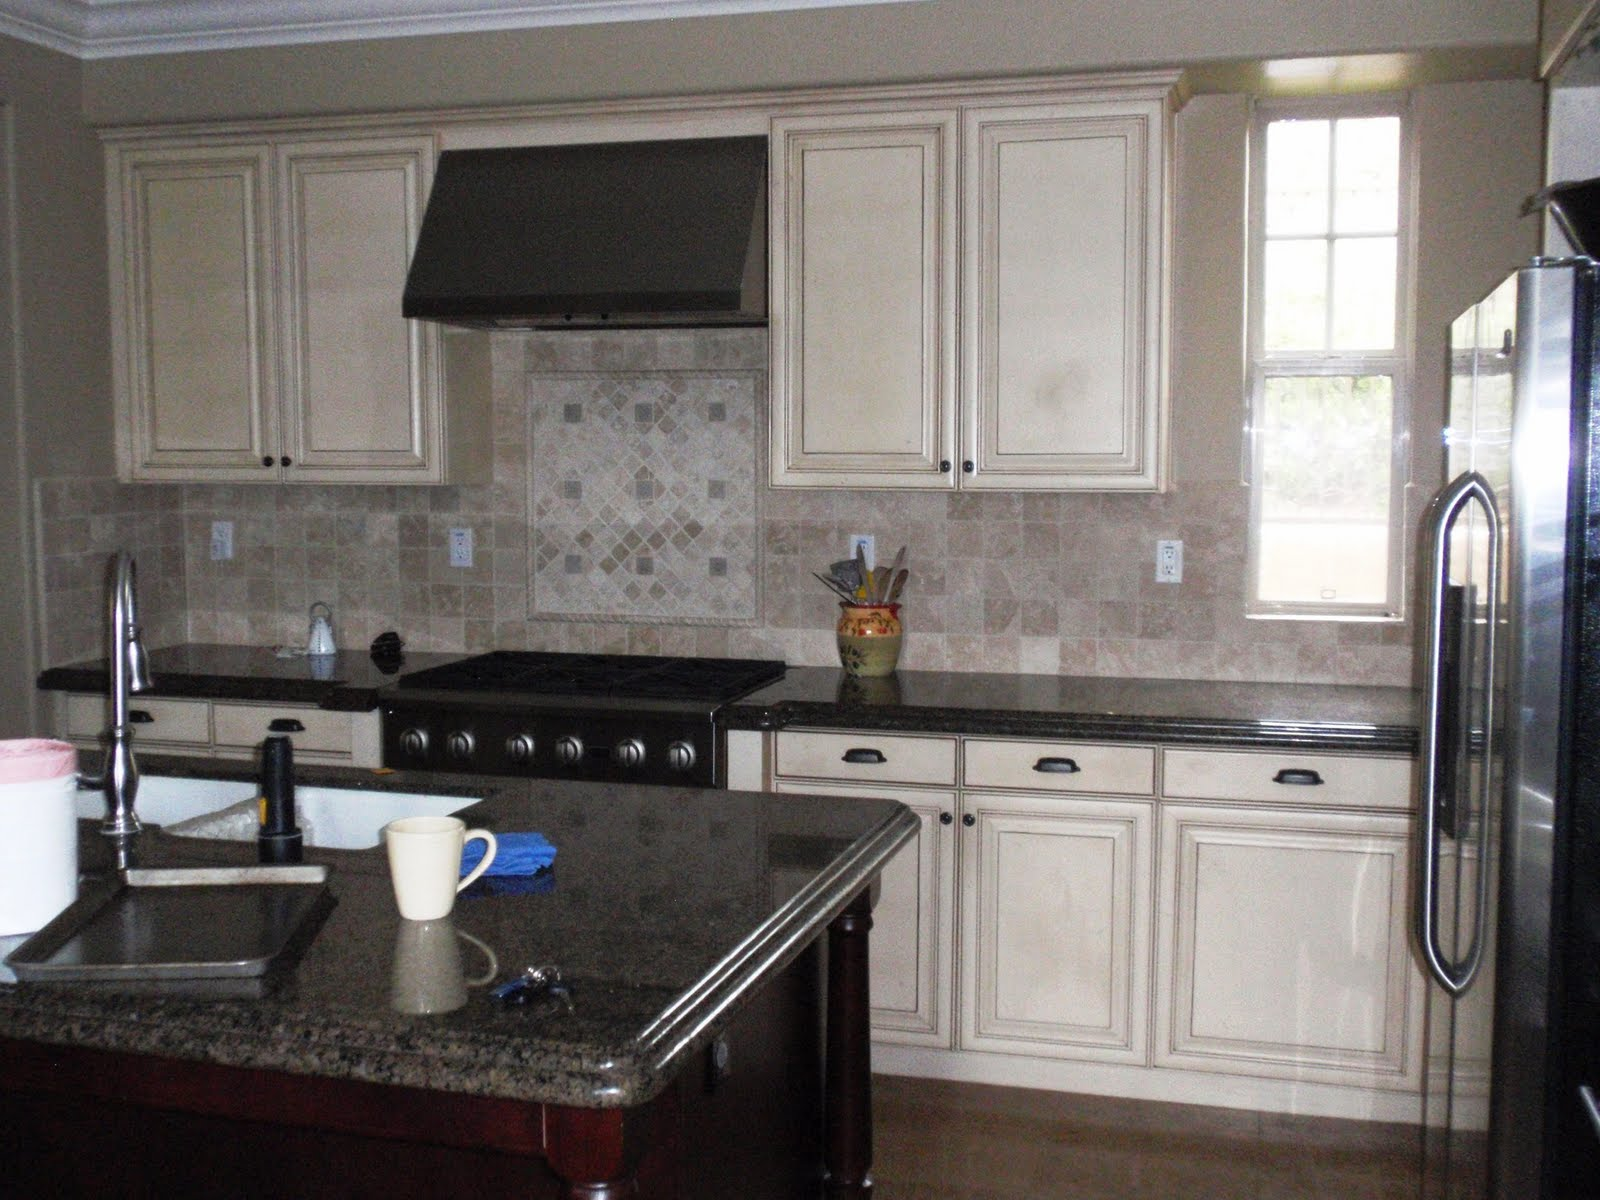 painting kitchen cabinets bdg style  painting kitchen cabinets  rh   bdgstyle blogspot com